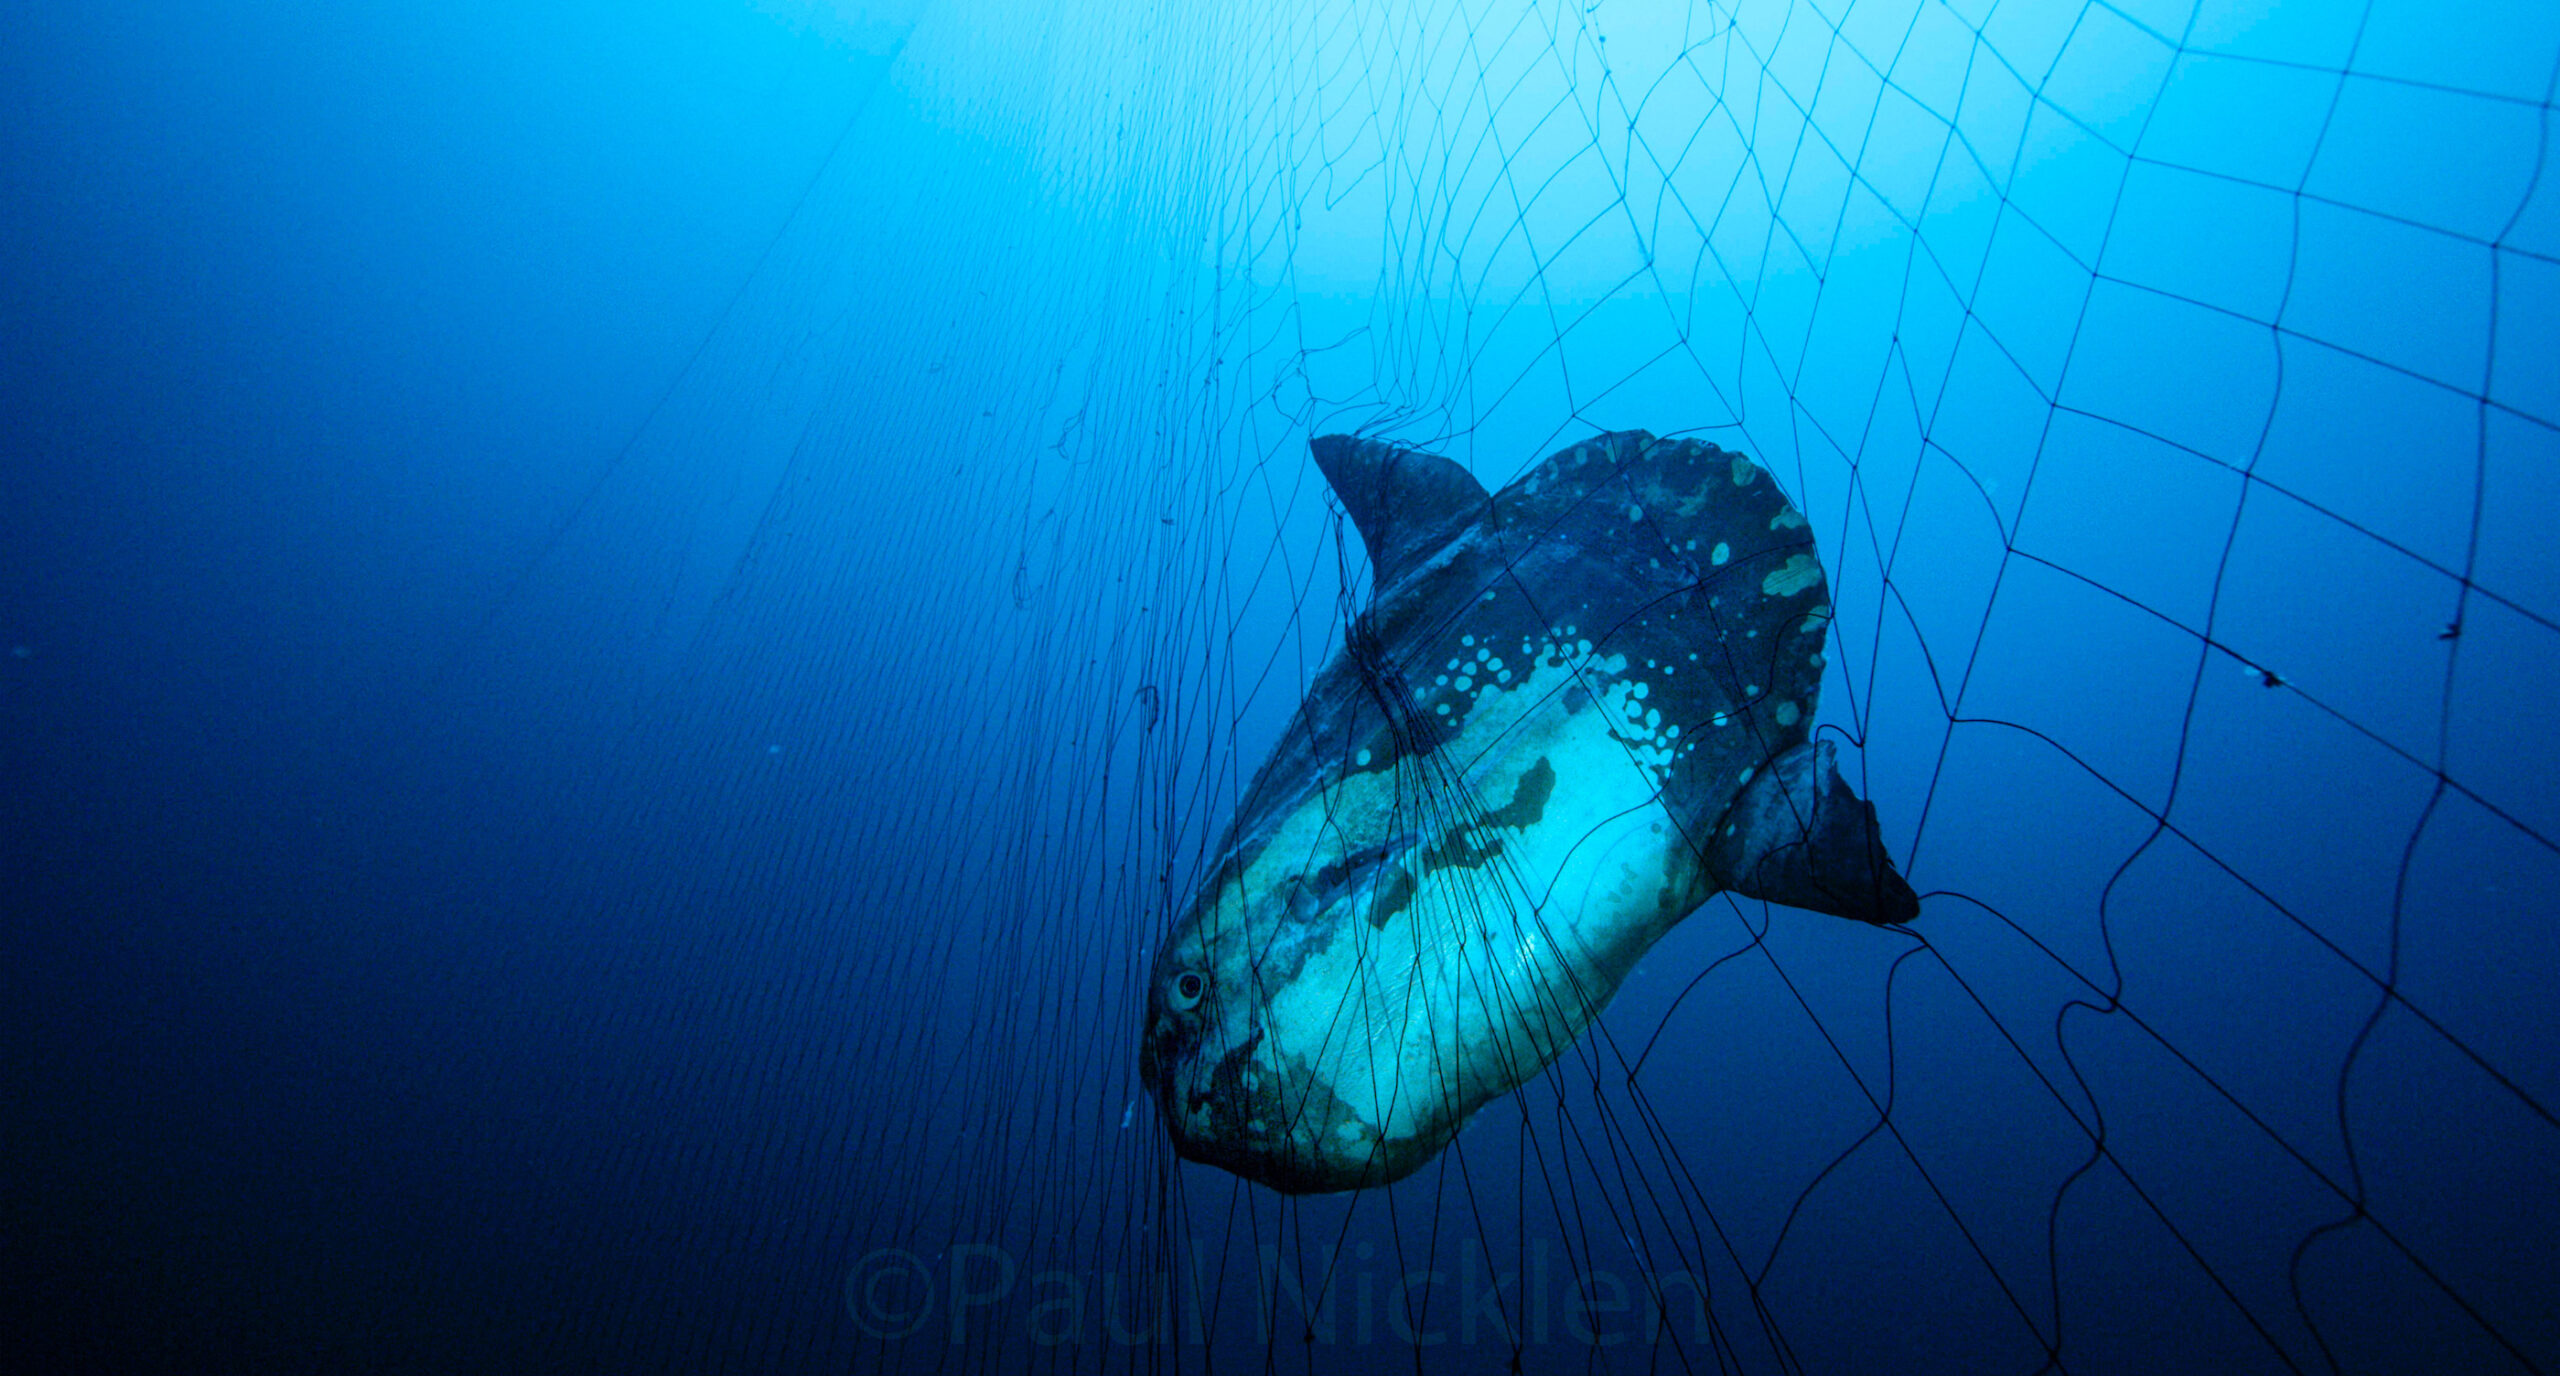 Reps. Lieu and Fitzpatrick Roll Out Bipartisan Driftnet Modernization and Bycatch Reduction Act